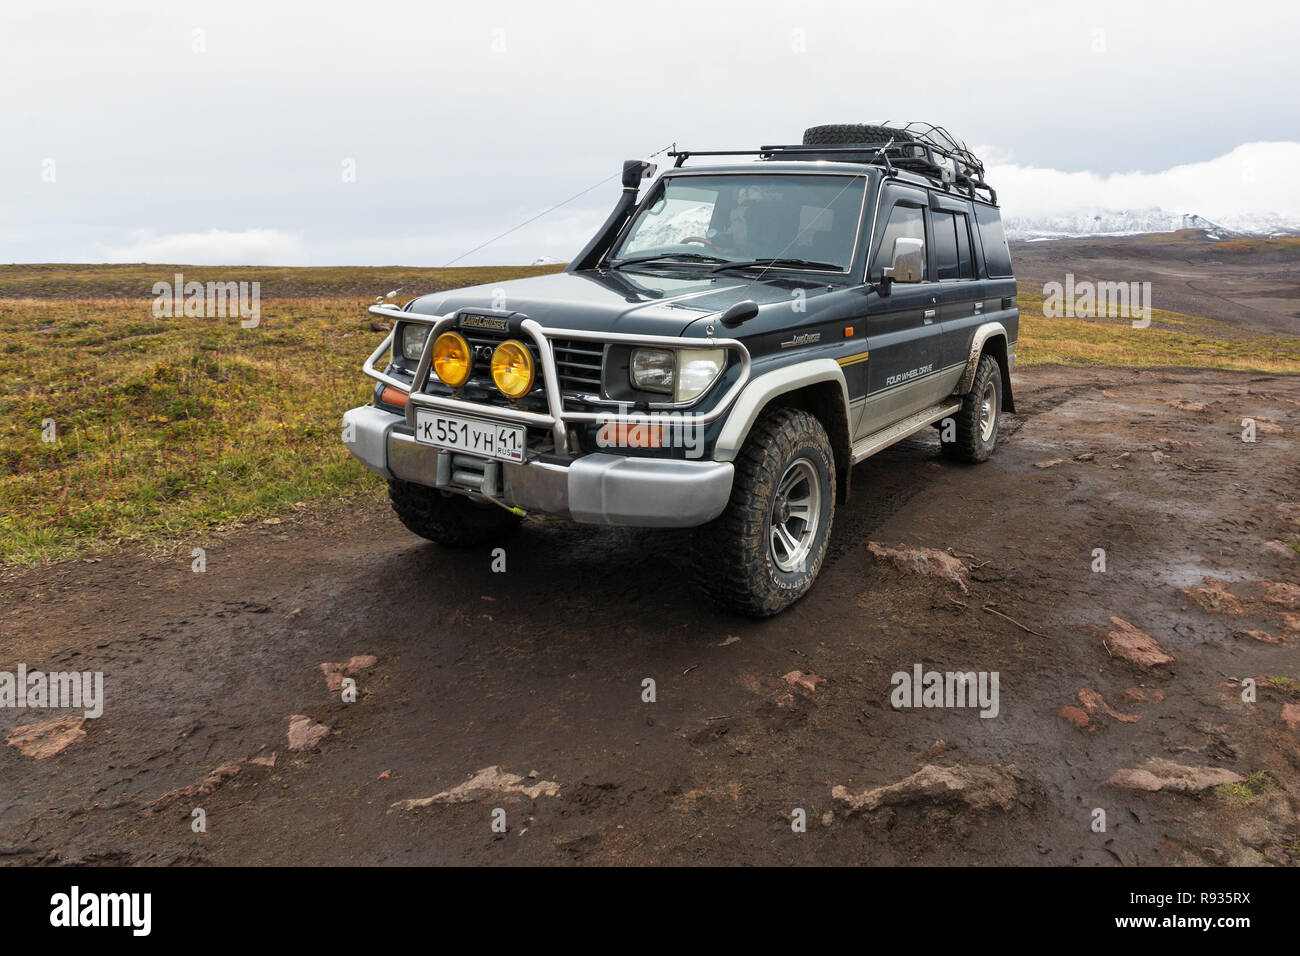 Extreme off-road expedition automobile Toyota Land Cruiser Prado (70 series) parked on mount road - Stock Image